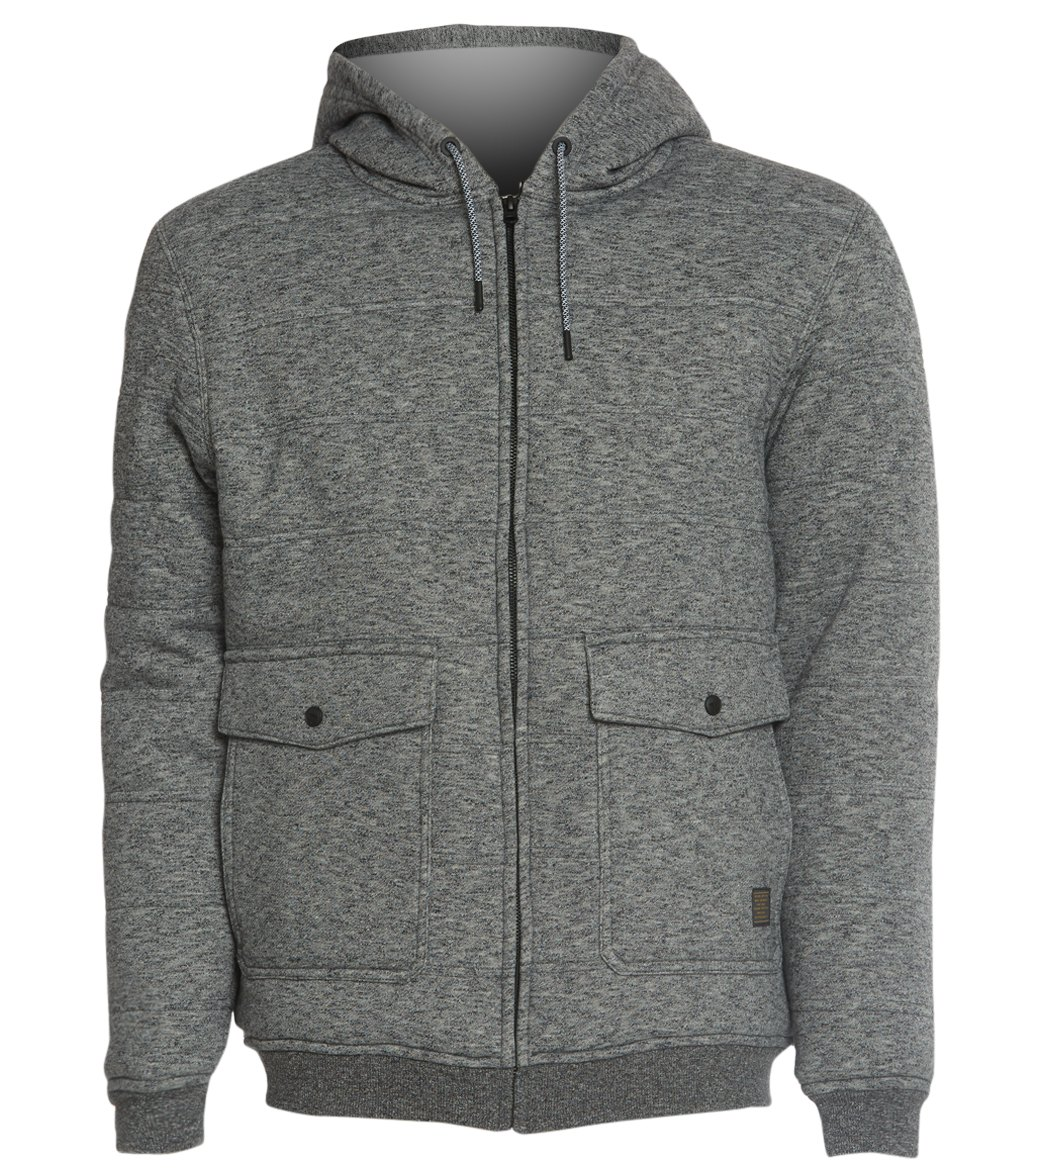 e0800fdd Rip Curl Men's Destination Sherpa Fleece Zip Hoodie at SwimOutlet.com -  Free Shipping